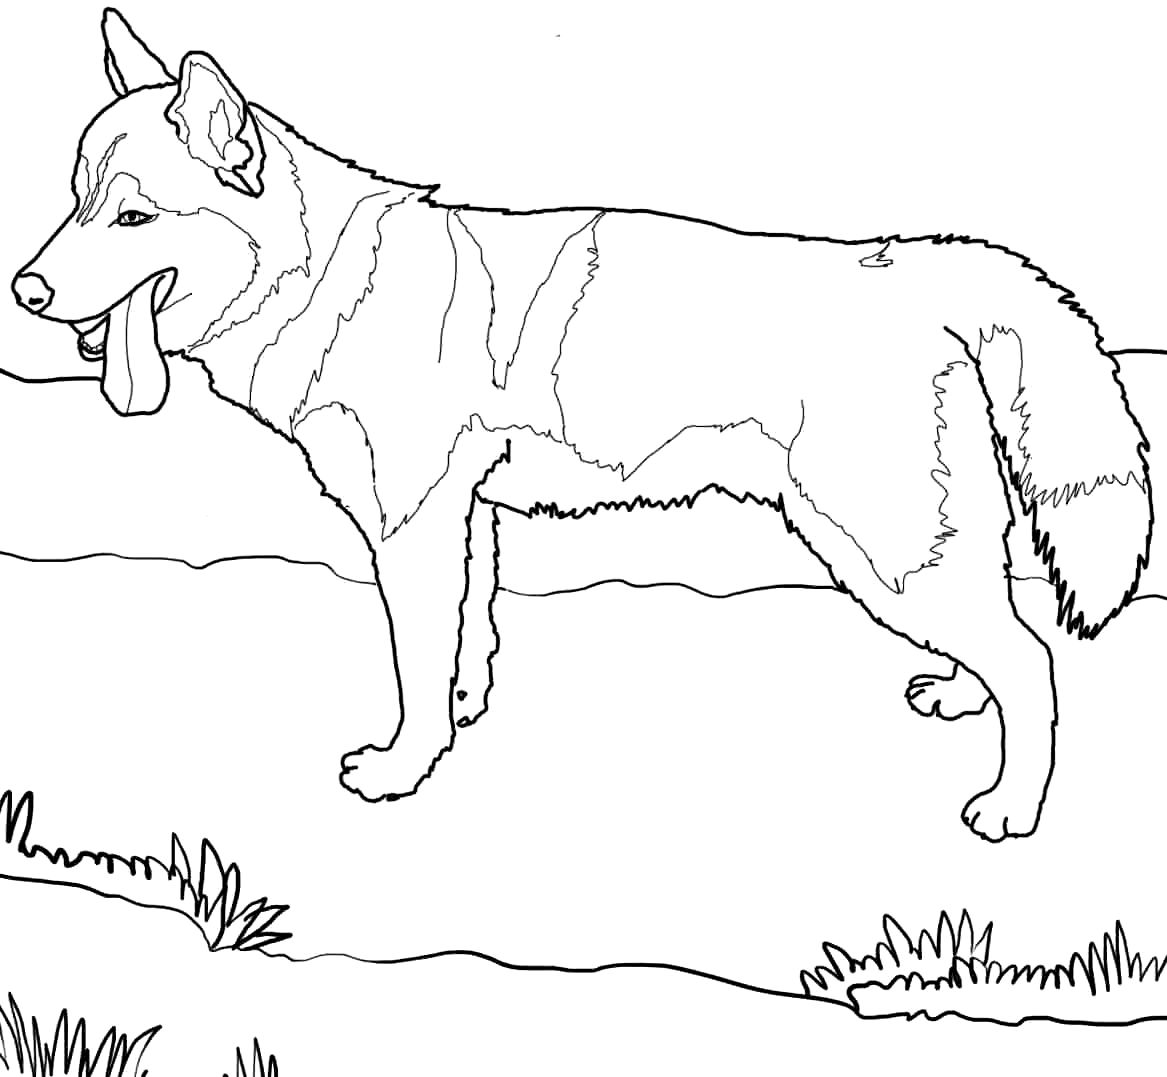 Hound Dog Coloring Pages At Getdrawings Com Free For